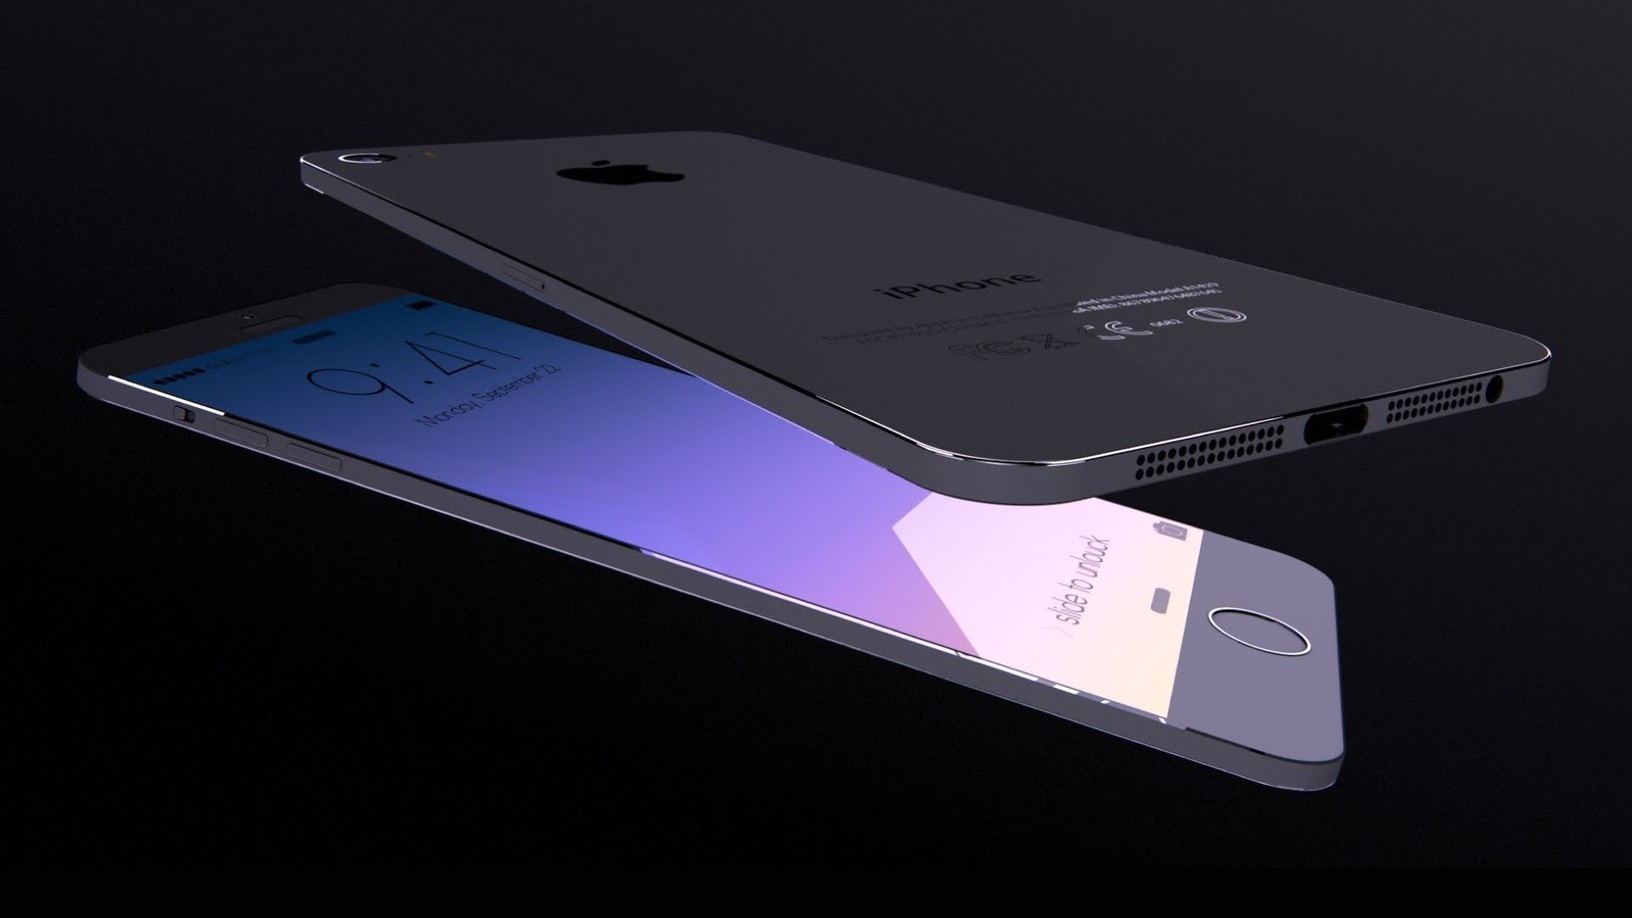 Concept video shows off stunning, ultra-thin Ap...